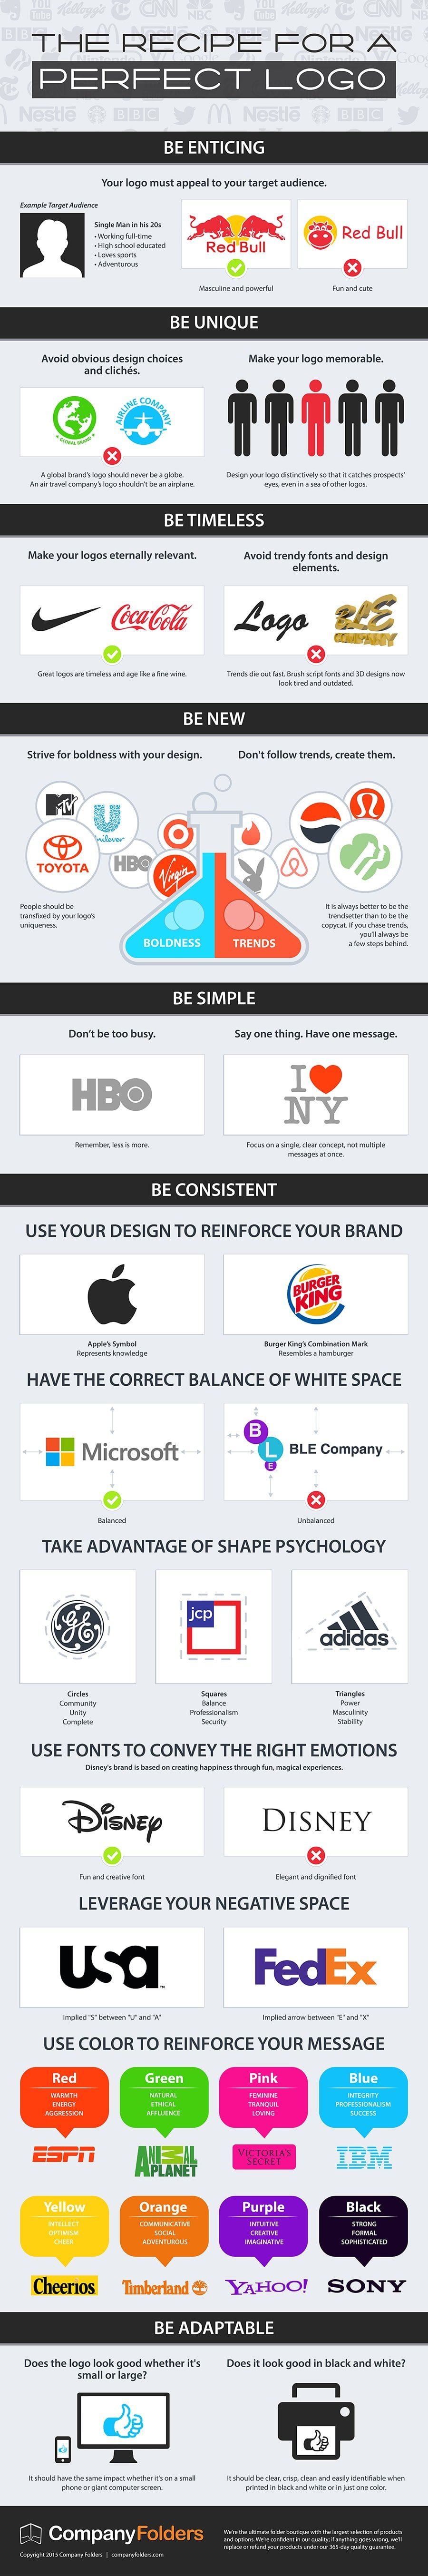 Guide to Creating Successful Company Logos